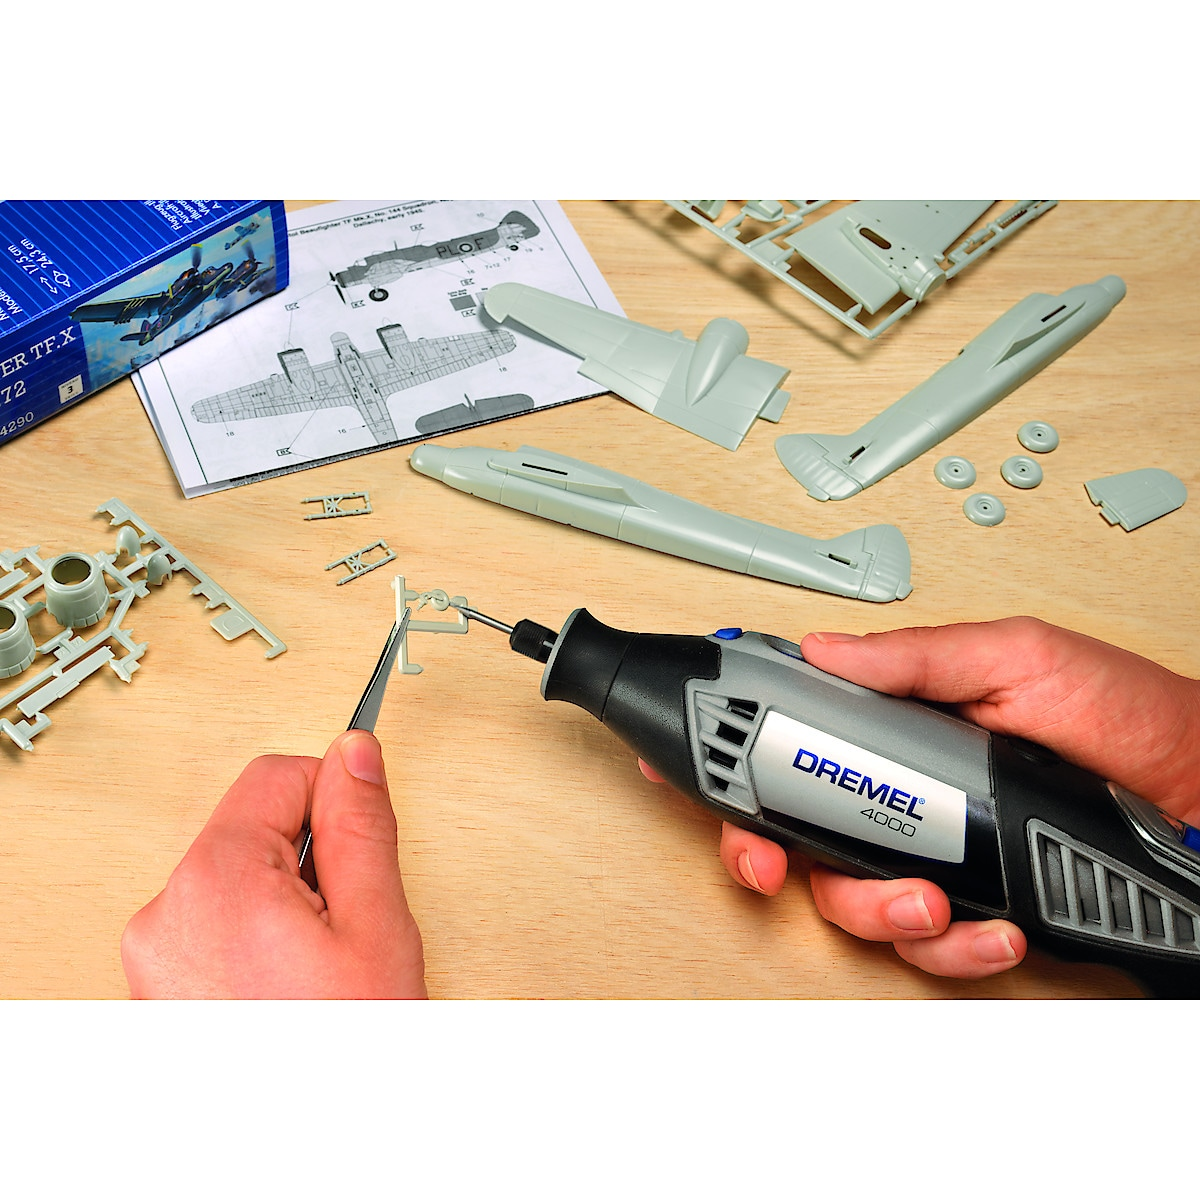 Dremel 4000 1/45 multimaskin